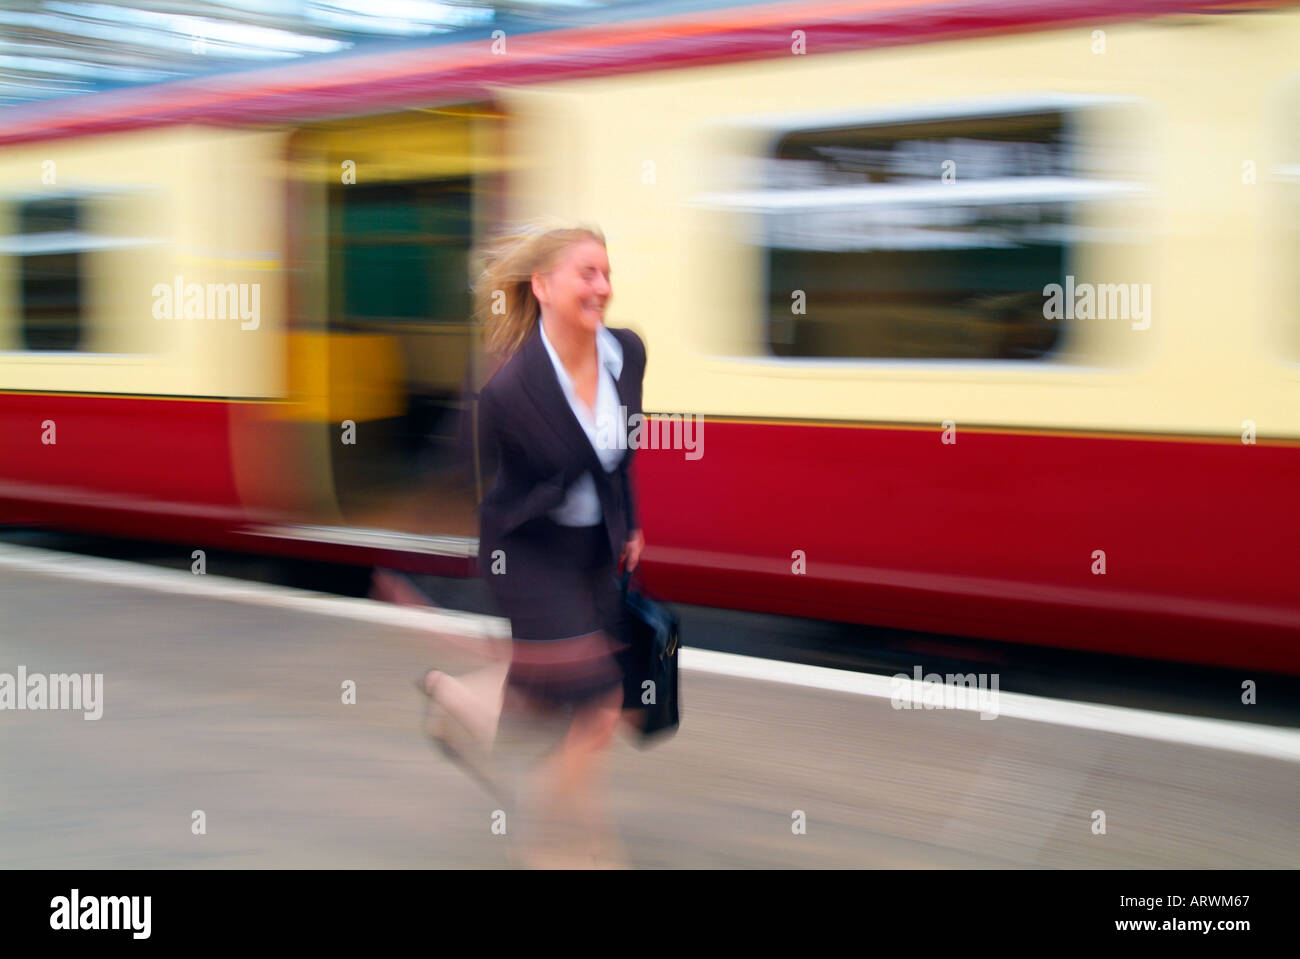 How to run a train on a woman